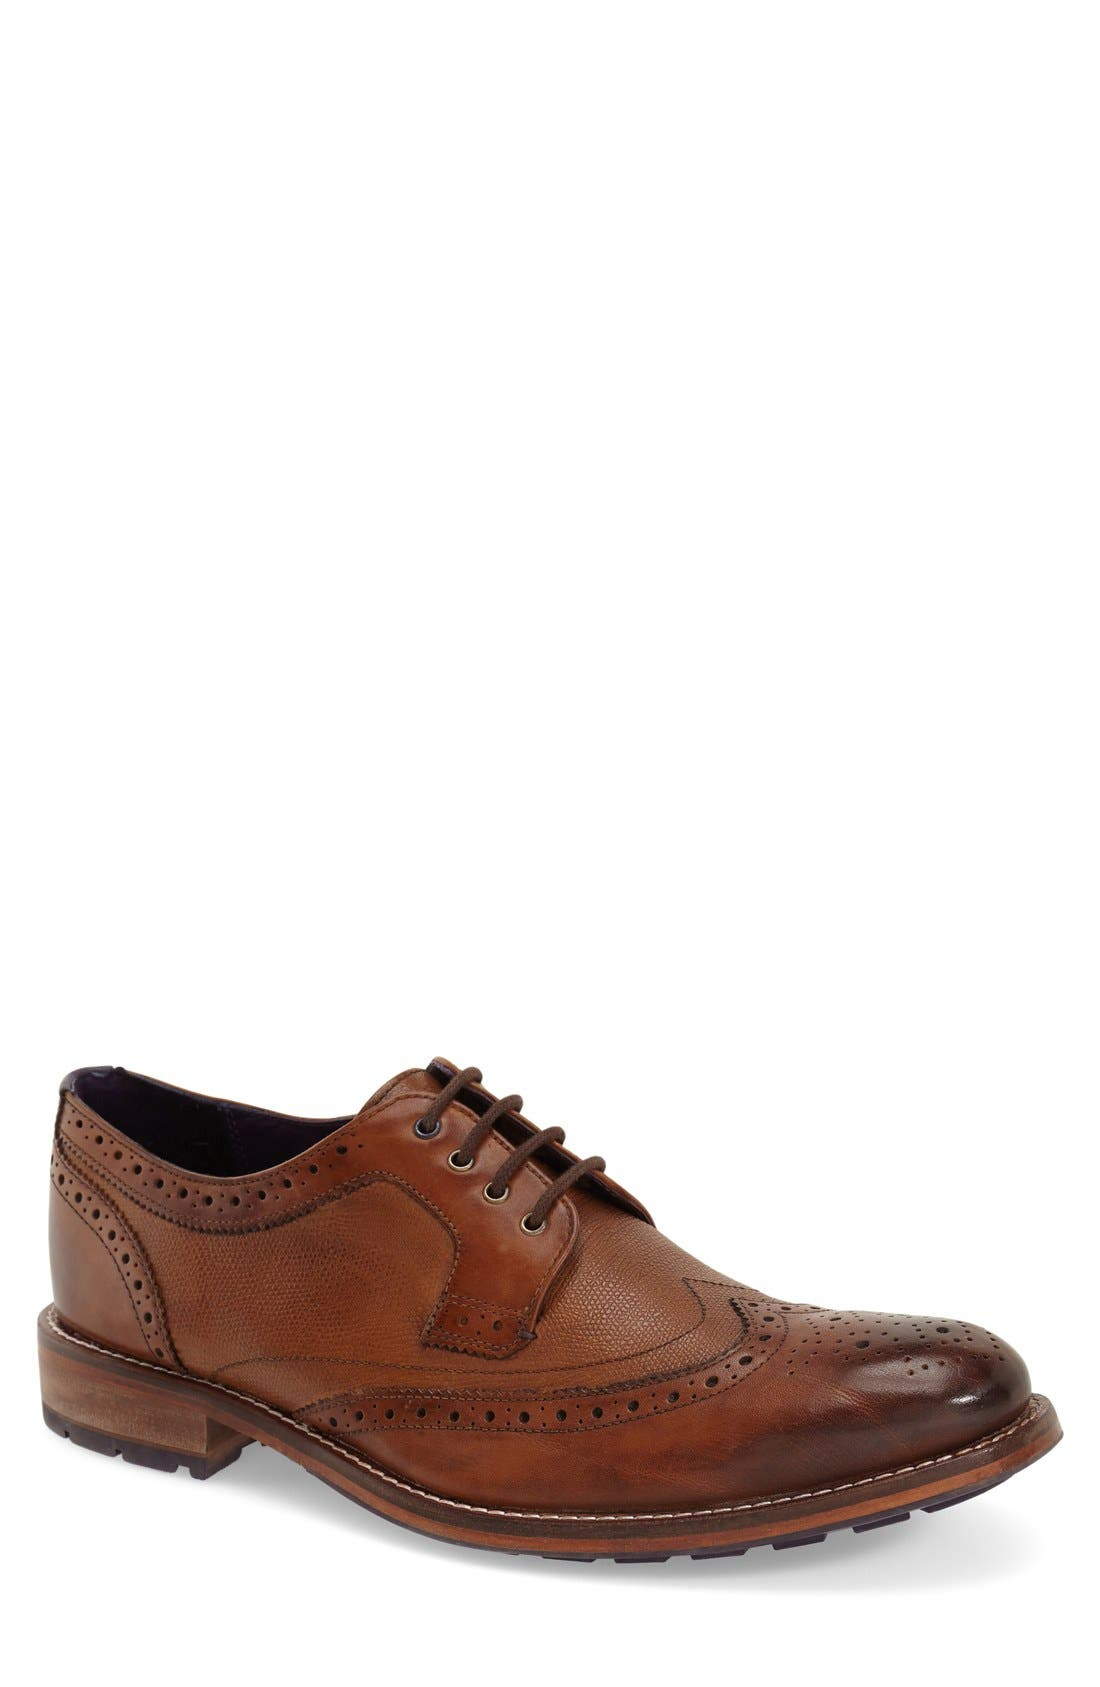 Alternate Image 1 Selected - Ted Baker London 'Cassiuss 4' Wingtip (Men)